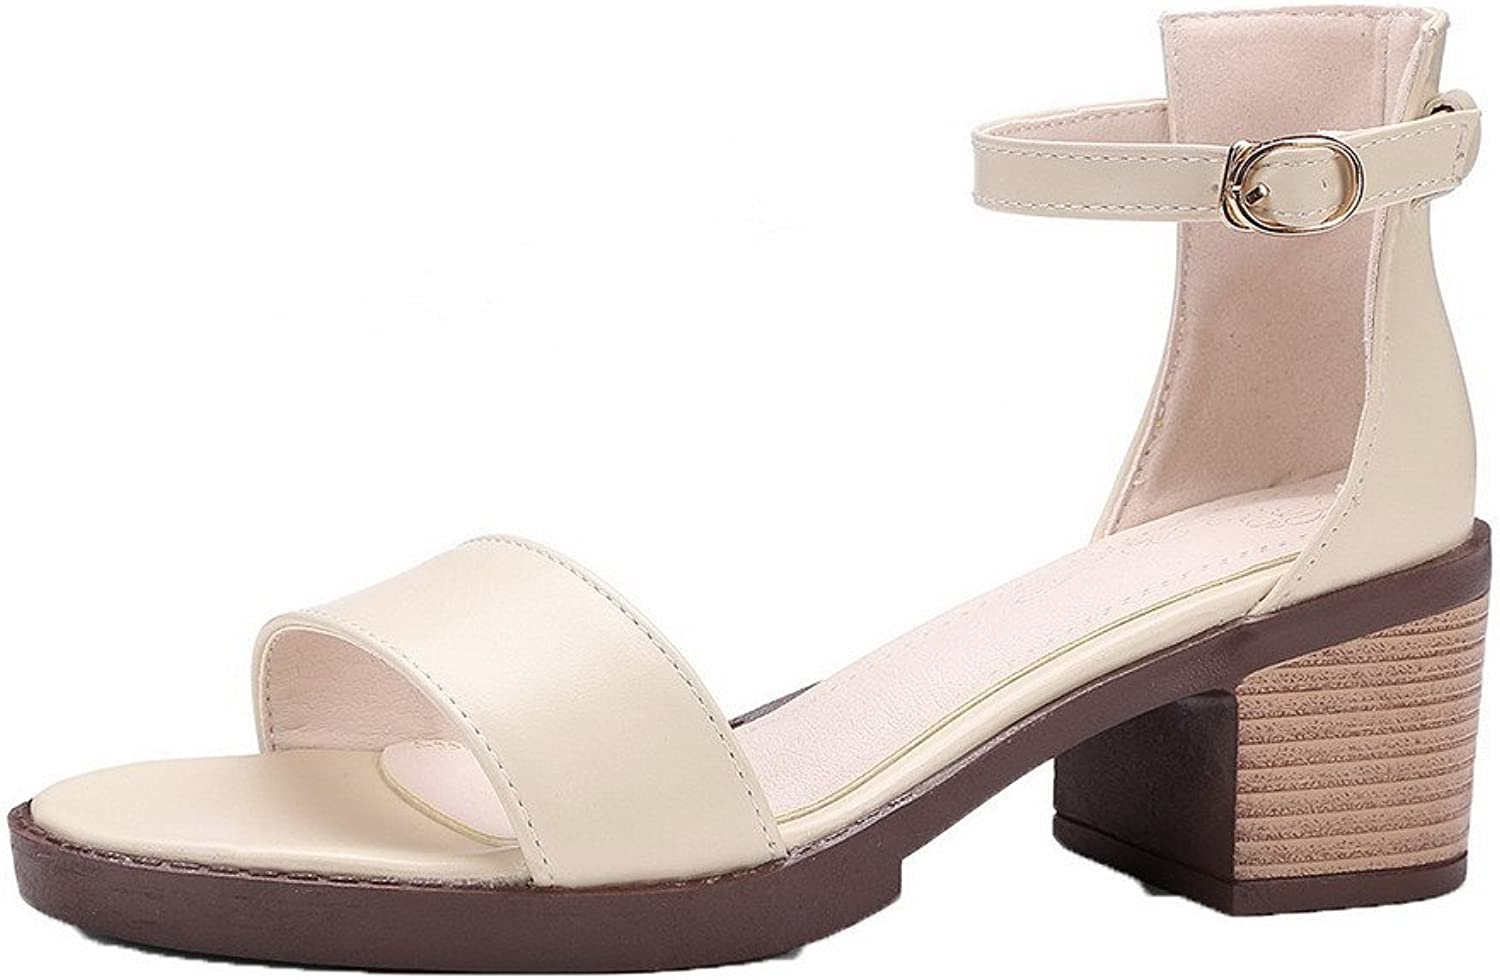 WeiPoot Women's Open-Toe Kitten-Heels PU Solid Buckle Sandals, EGHLH005606